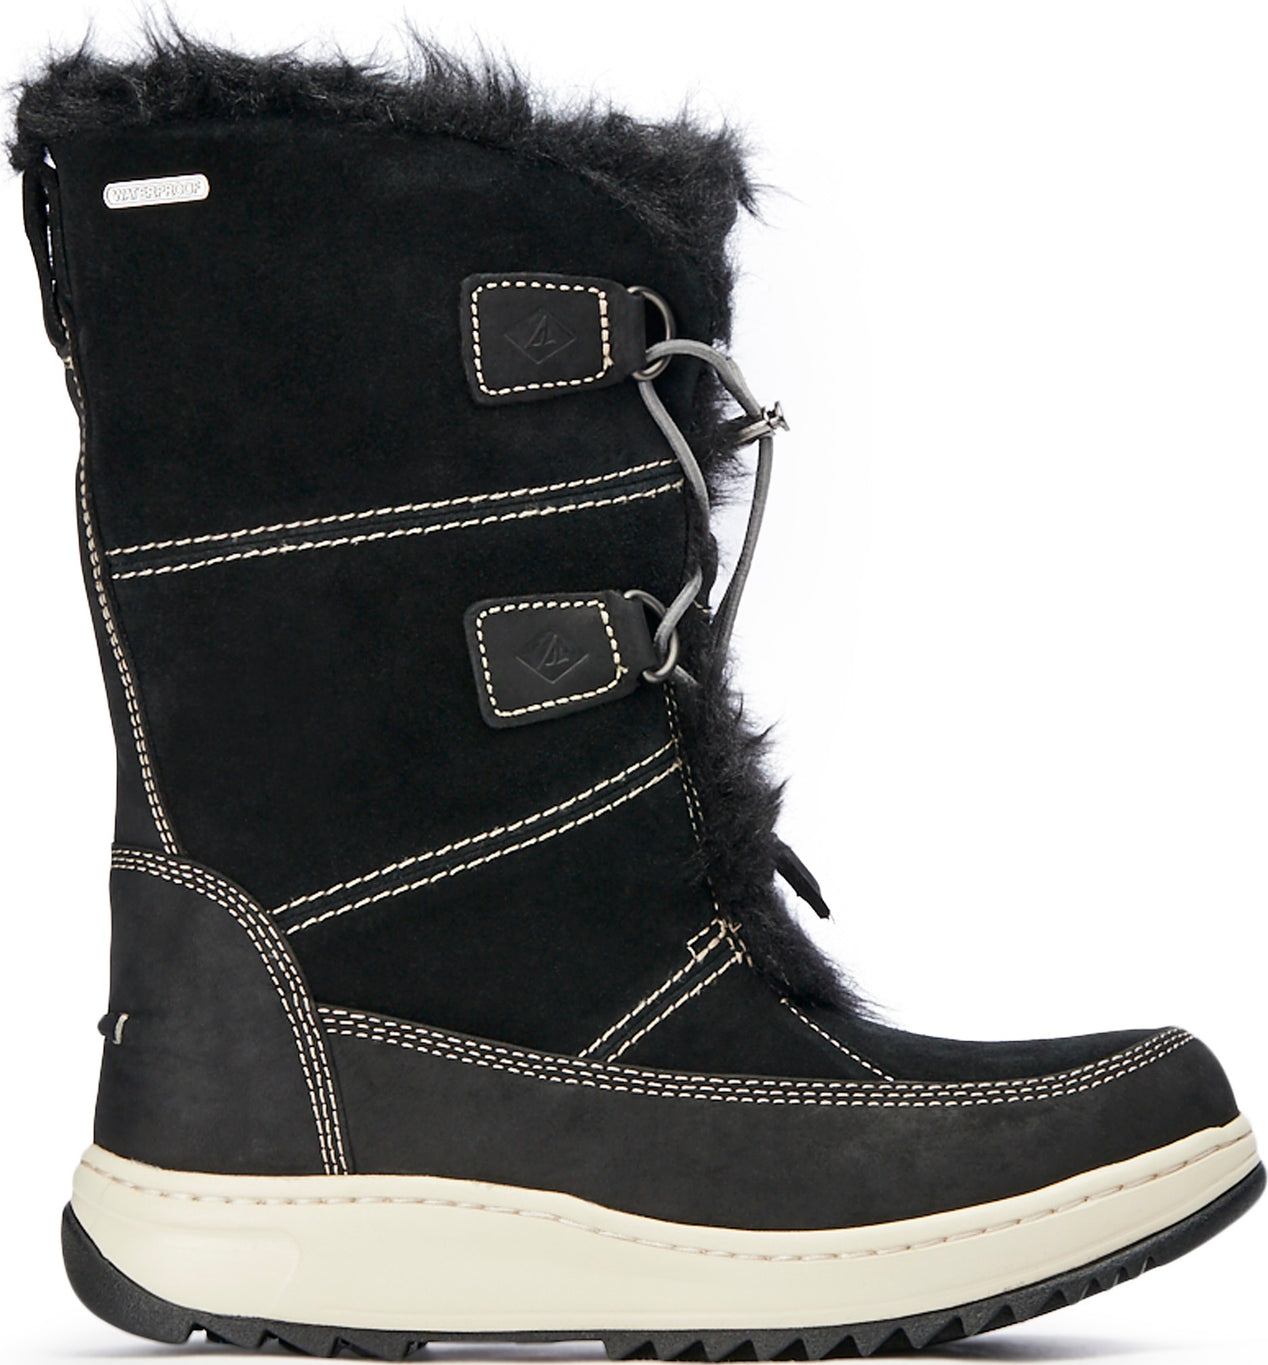 18f0781437ac2 Sperry Top Sider Botte Powder Valley Avec Arctic Grip Femme ...